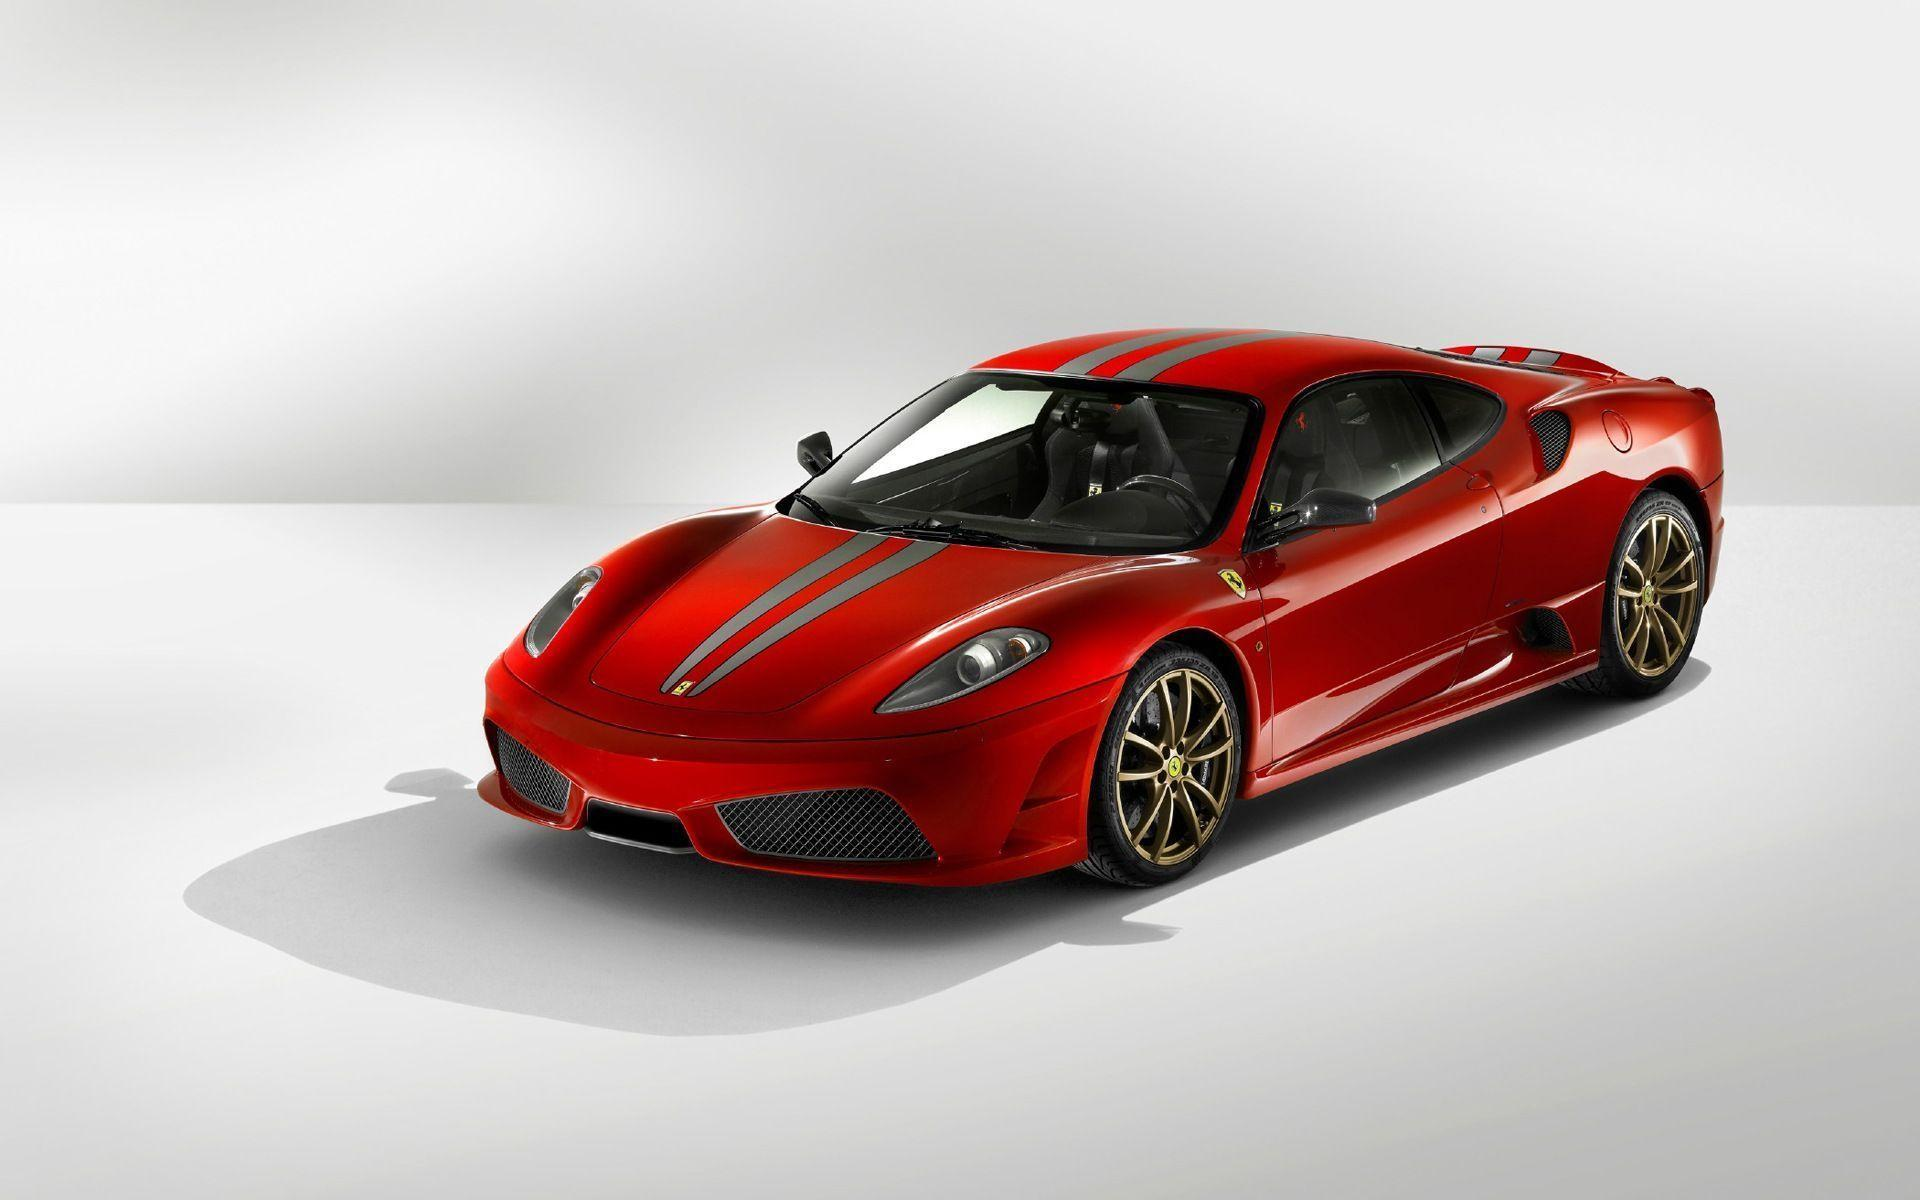 Wallpapers For > Ferrari F430 Wallpapers Widescreen